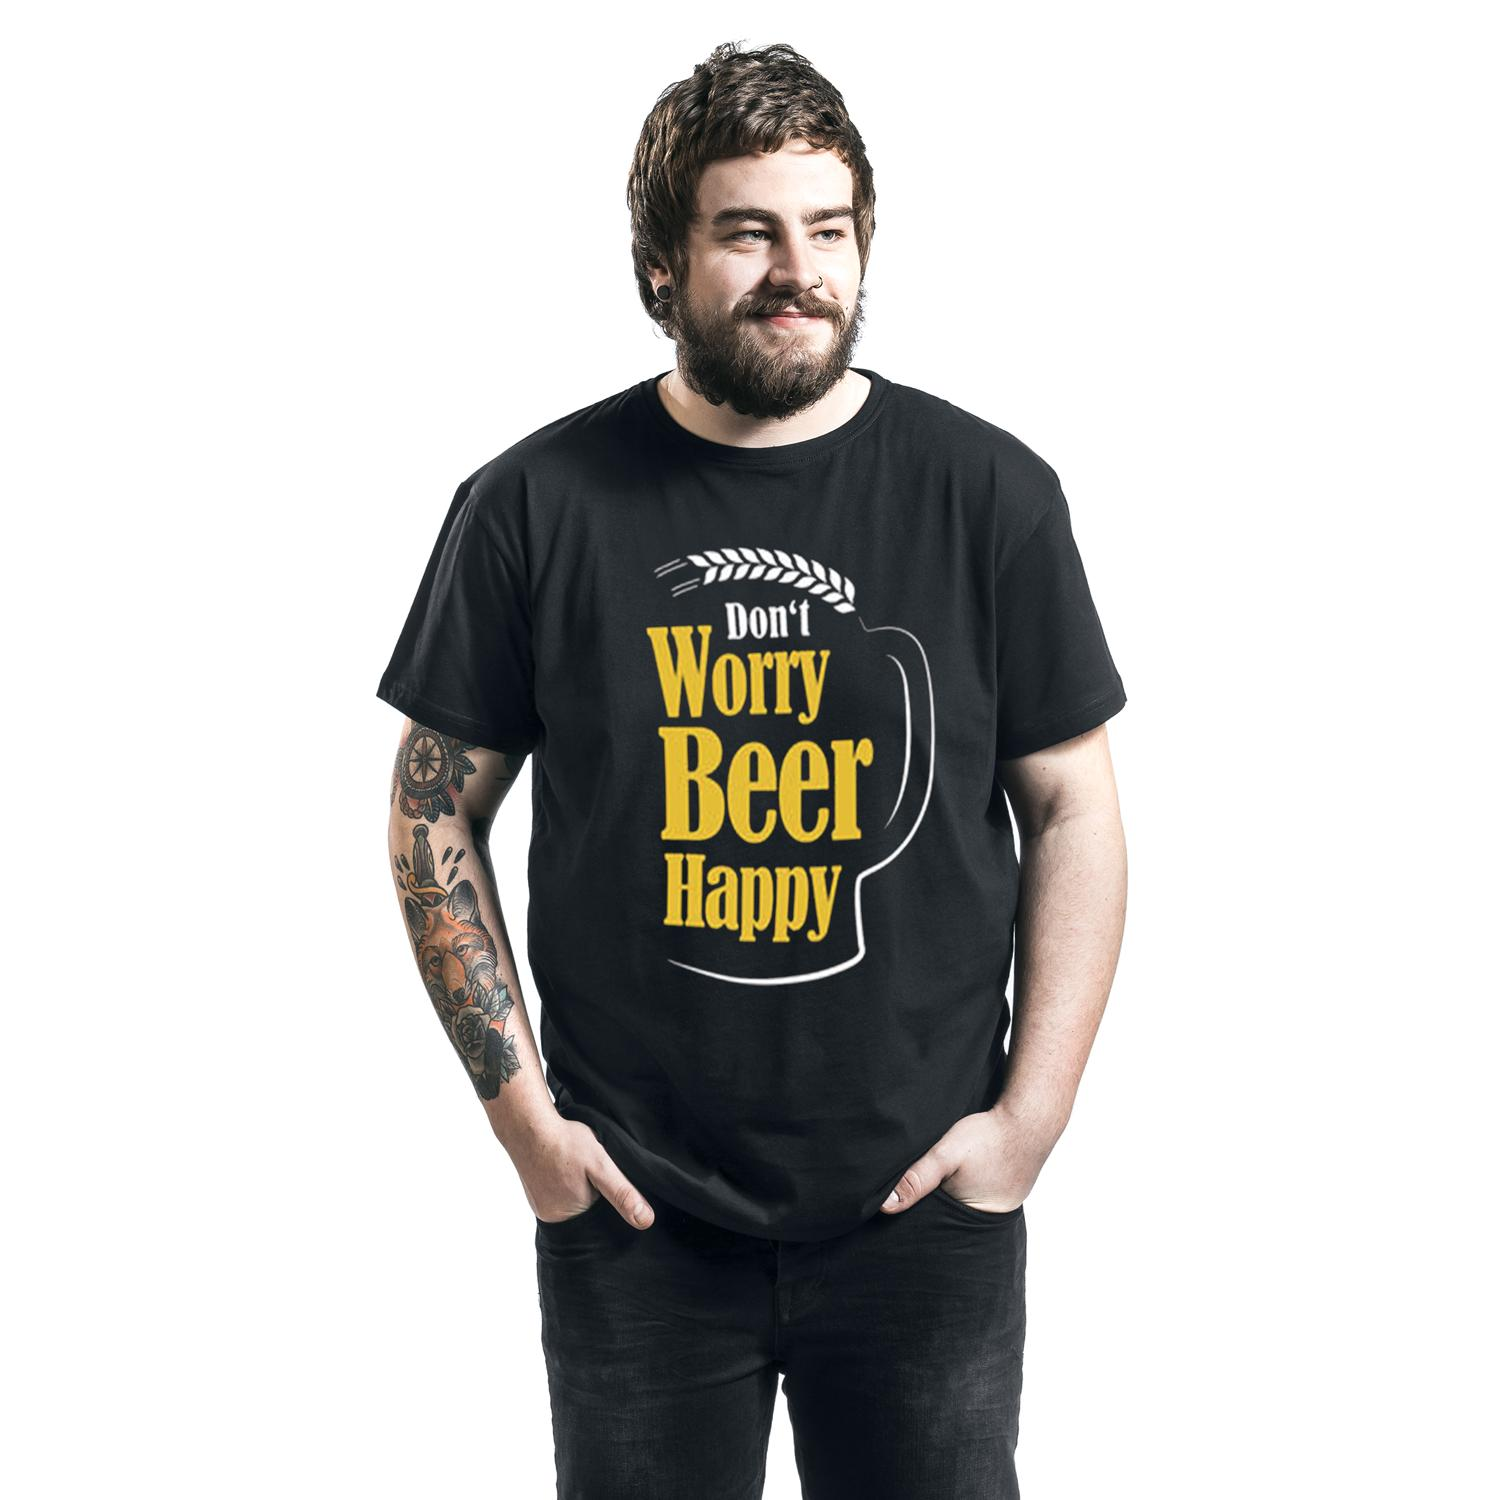 Don't Worry Beer Happy T-shirt Design man